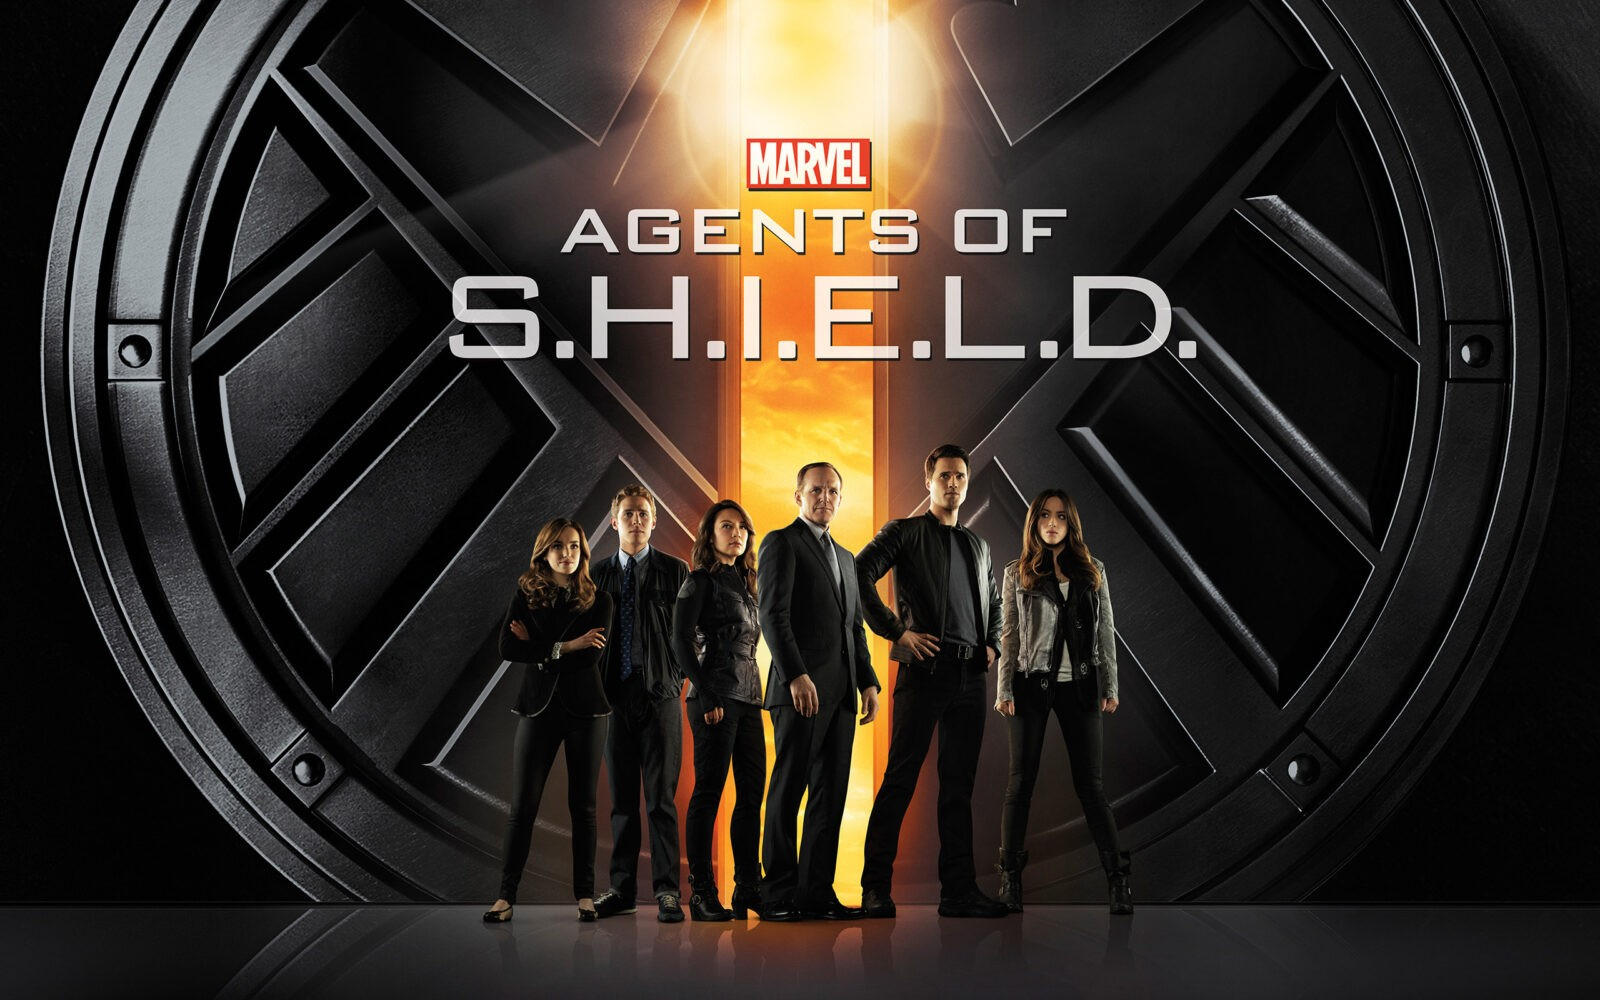 Agents of S.H.I.E.L.D 4k UltraHD wallpaper